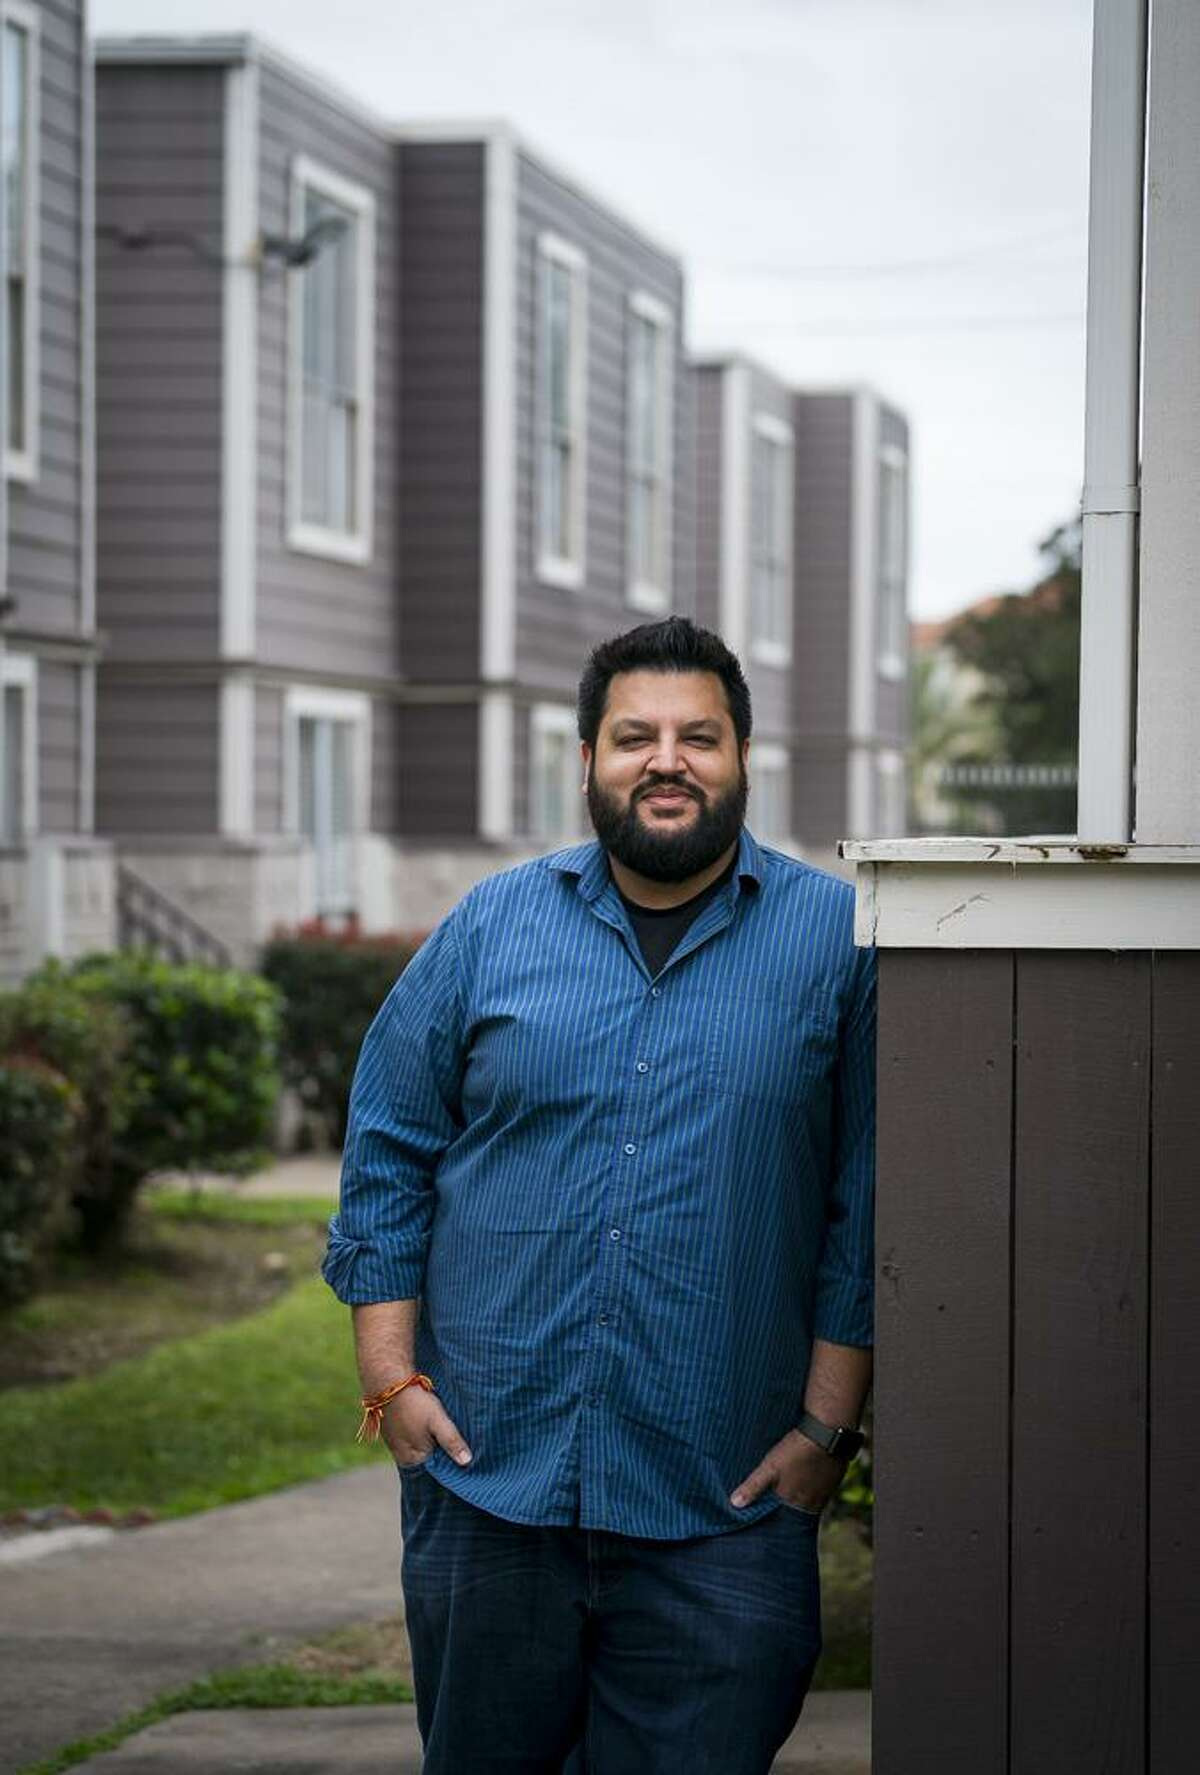 Manu Gupta, managing director of Indus Management Group, has been remodeling apartment complexes like this one, Villa Barcelona, around Houston. Photographed Tuesday, Jan. 22, 2019.